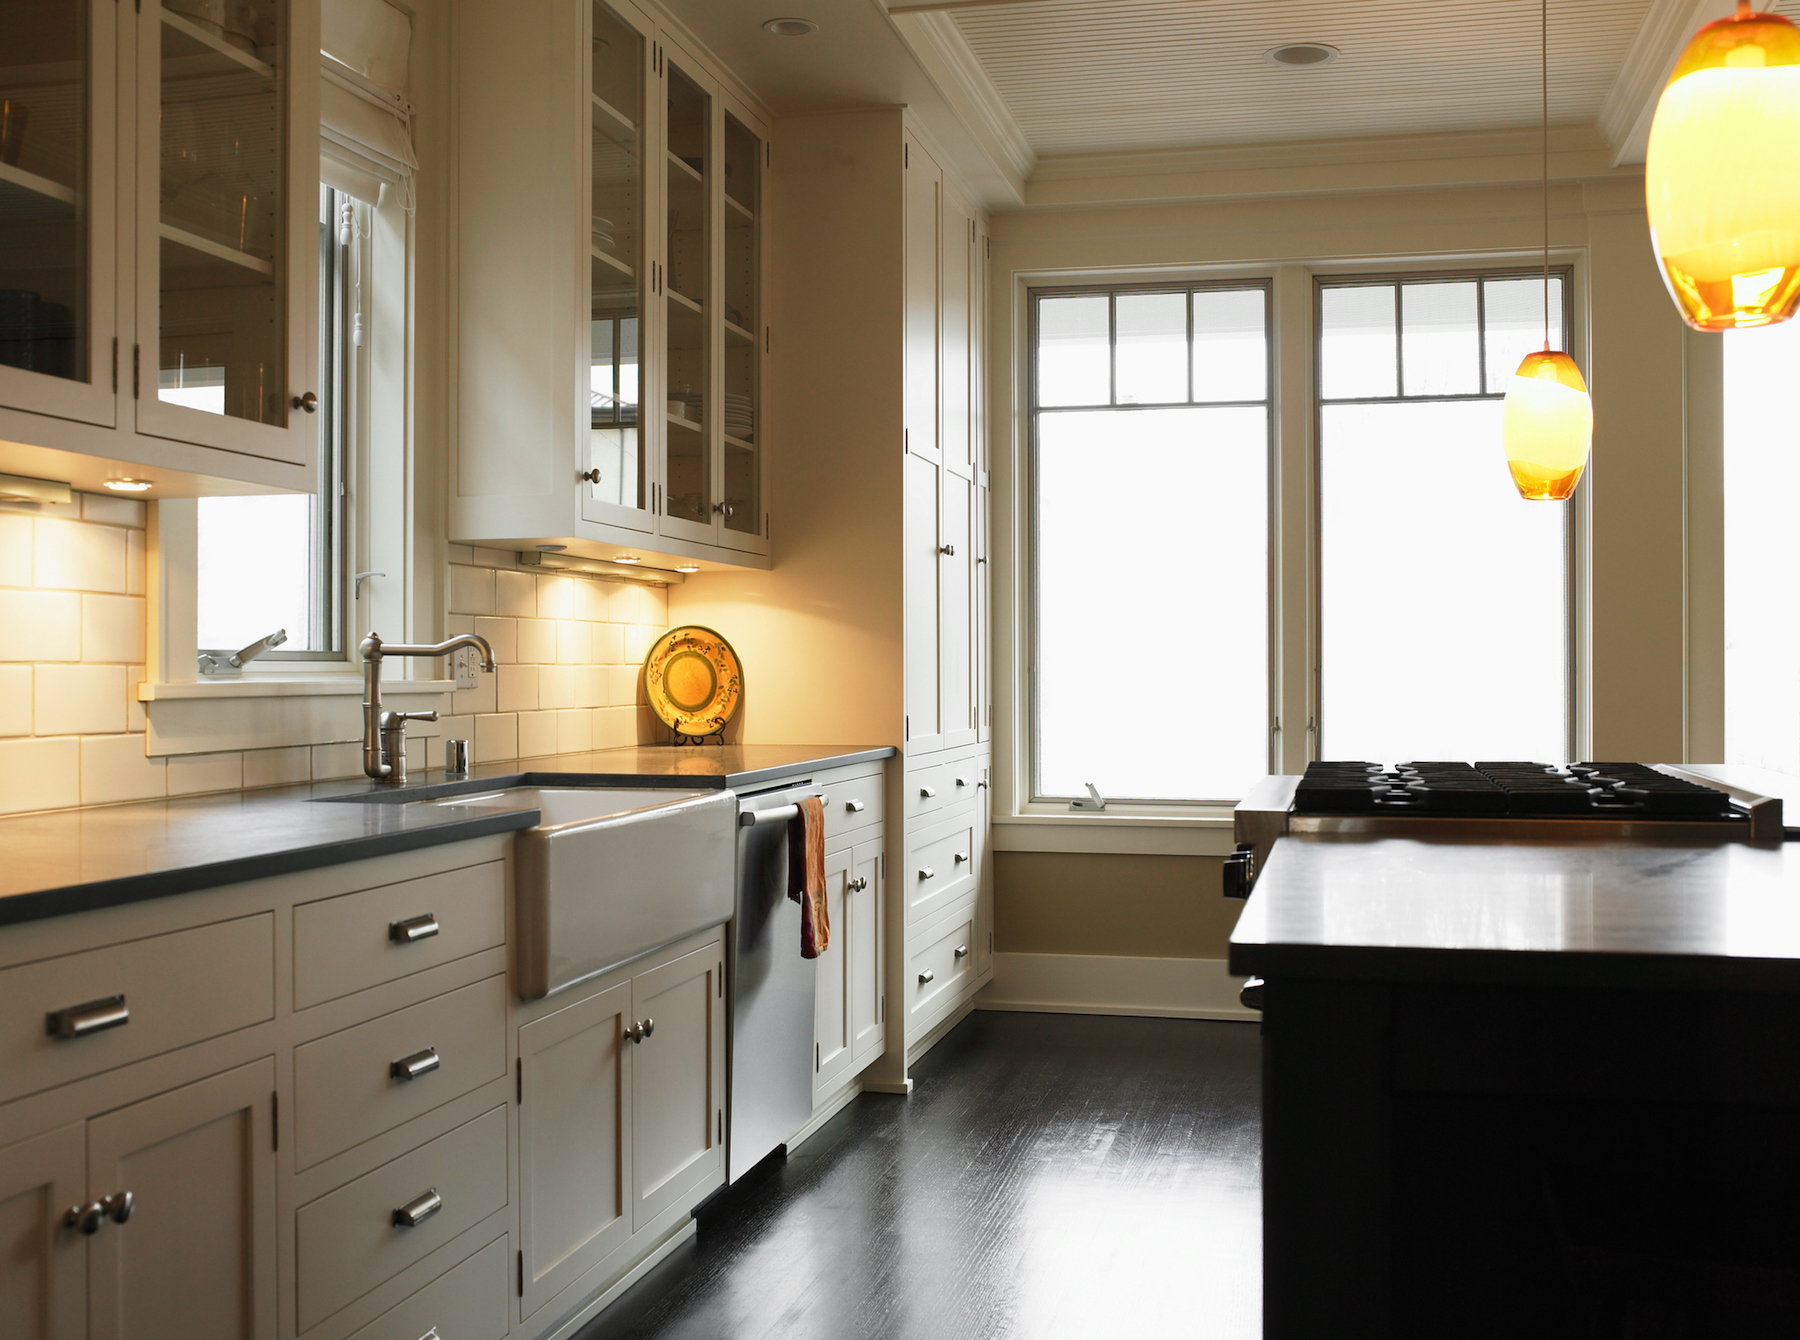 Under Cabinet Kitchen Lighting in beige kitchen & The $25 Lighting Hack That Transformed My Kitchen (And Didnu0027t ...